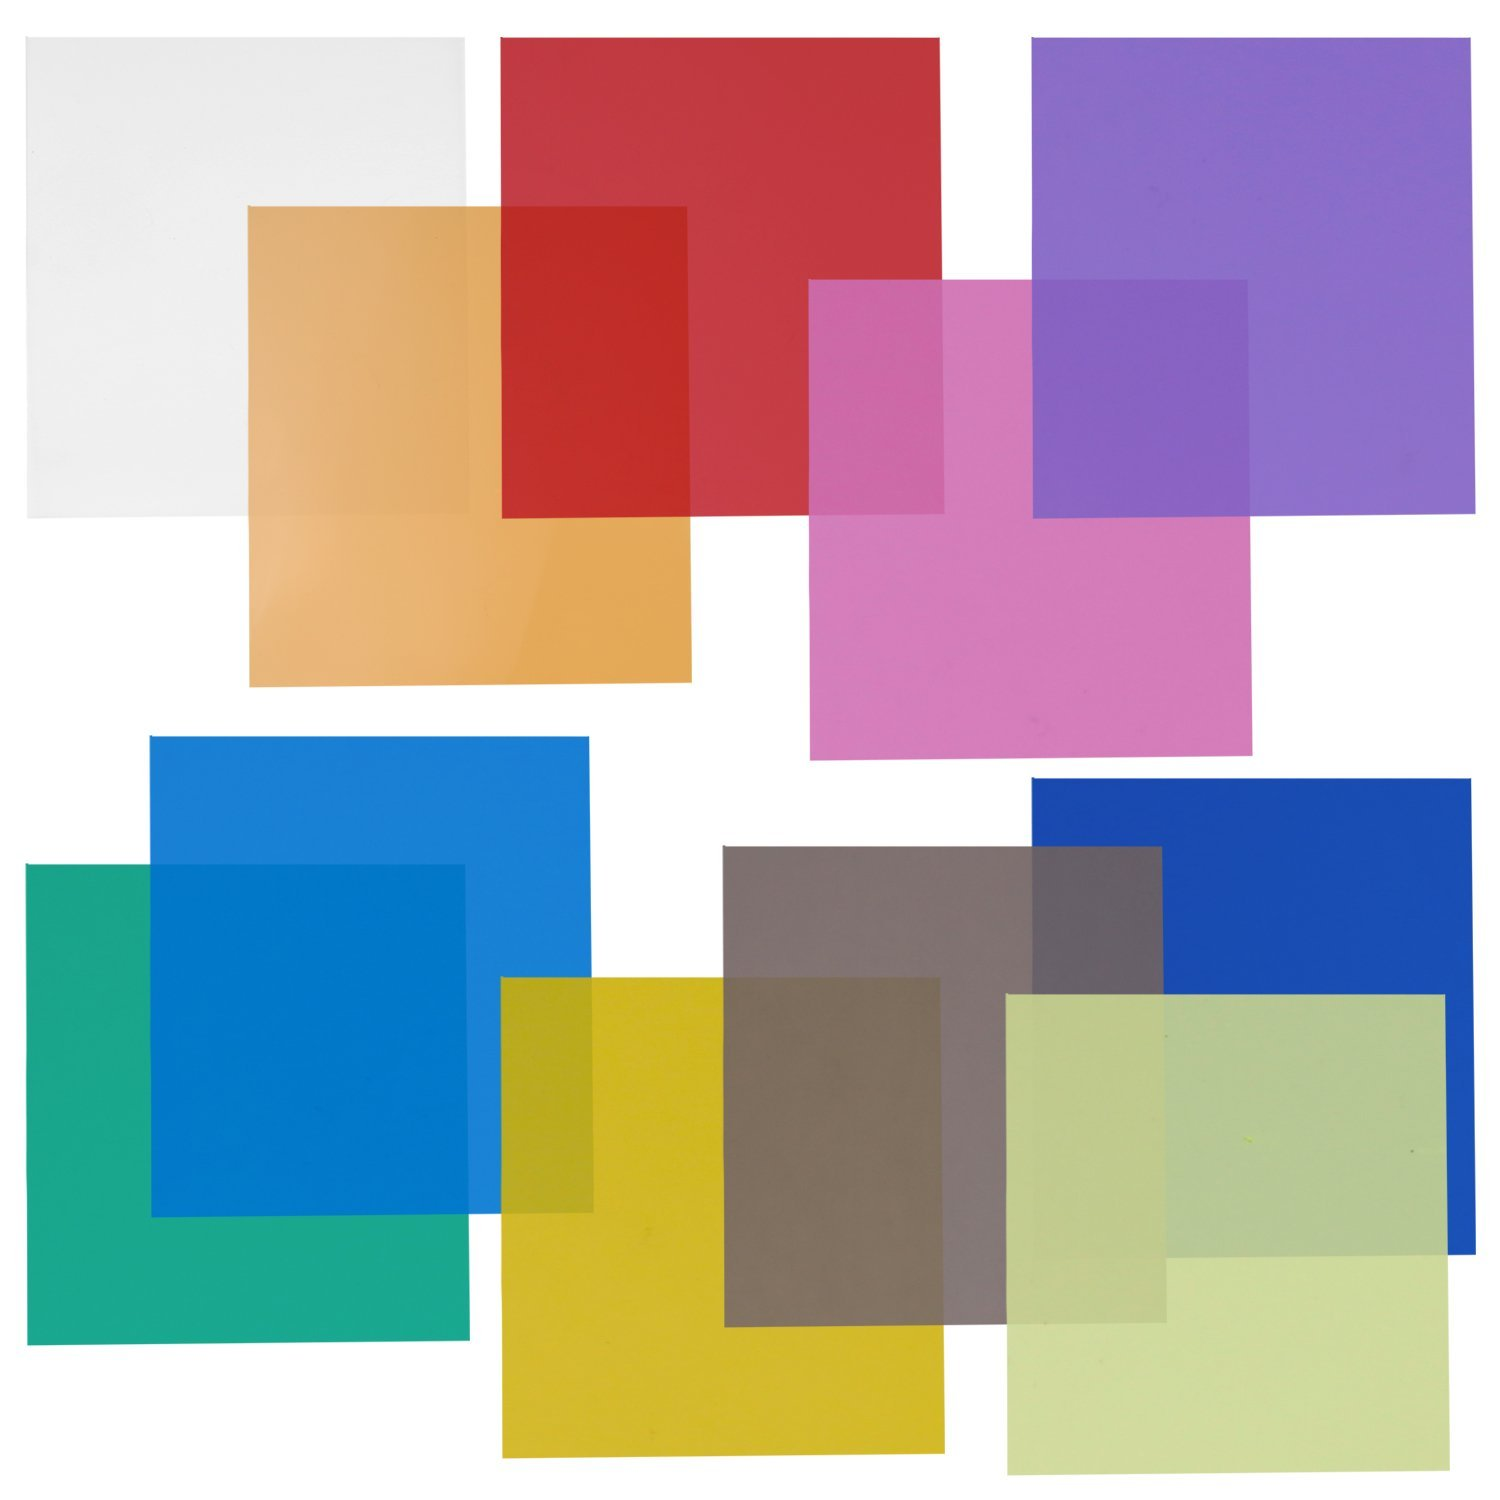 Neewer 12x12 Transparent Color Gel Filter Set Pack of 11 Sheets for Photo Studio Strobe Flashlight(Green, Blue, Purple, Pink, Red, Light Gray, Dark Gray, Yellow, Beige, Fresh Green, Acid Blue) by Neewer